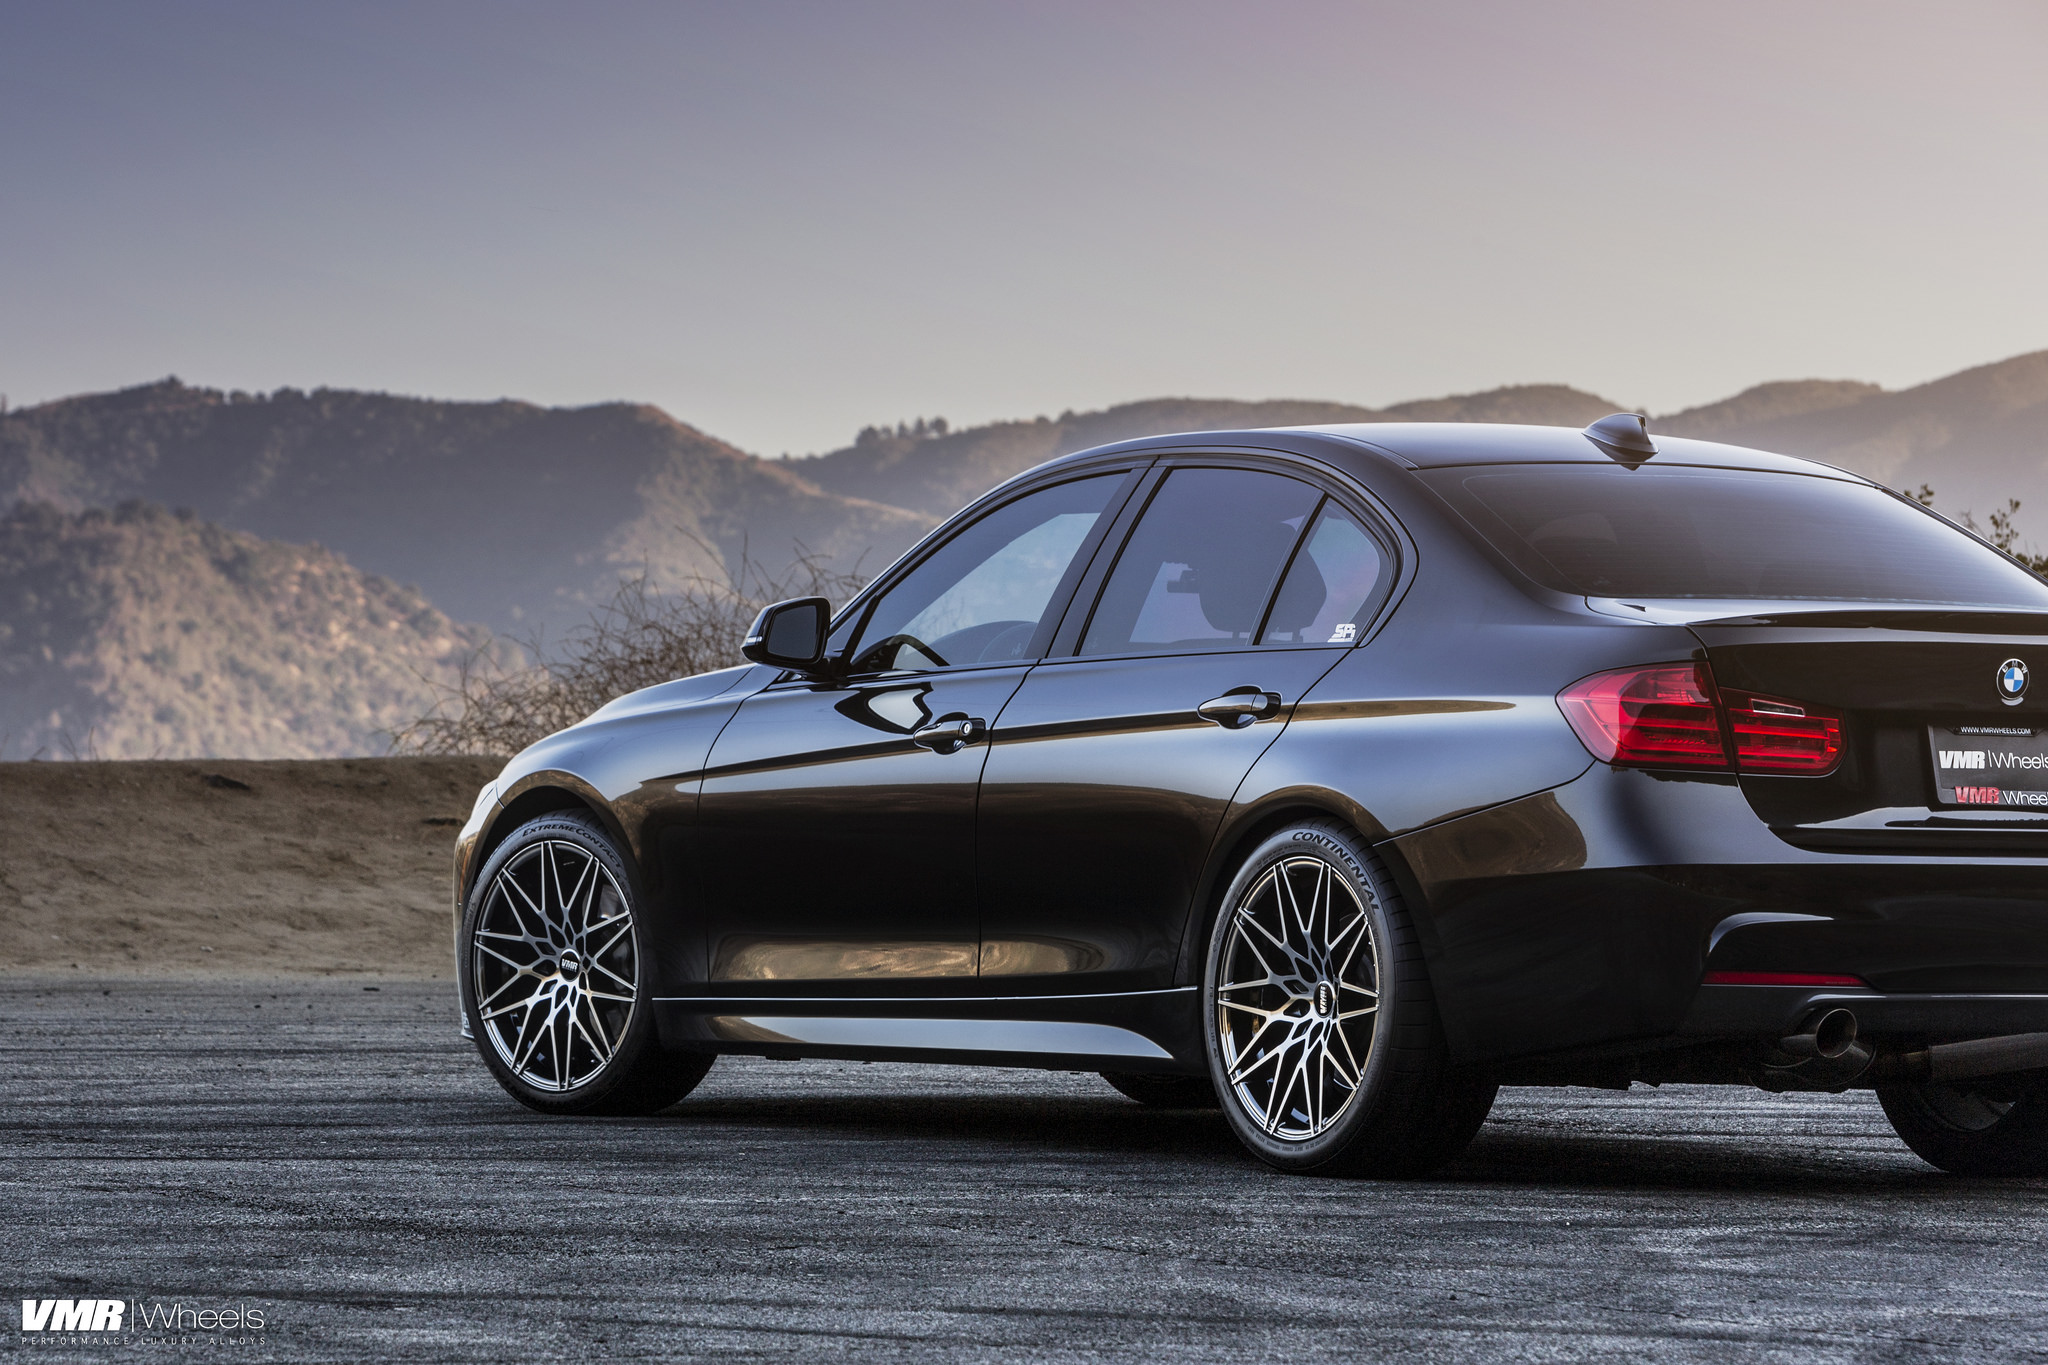 les bmw 335i f30 et m4 gts s offrent de nouvelles jantes. Black Bedroom Furniture Sets. Home Design Ideas